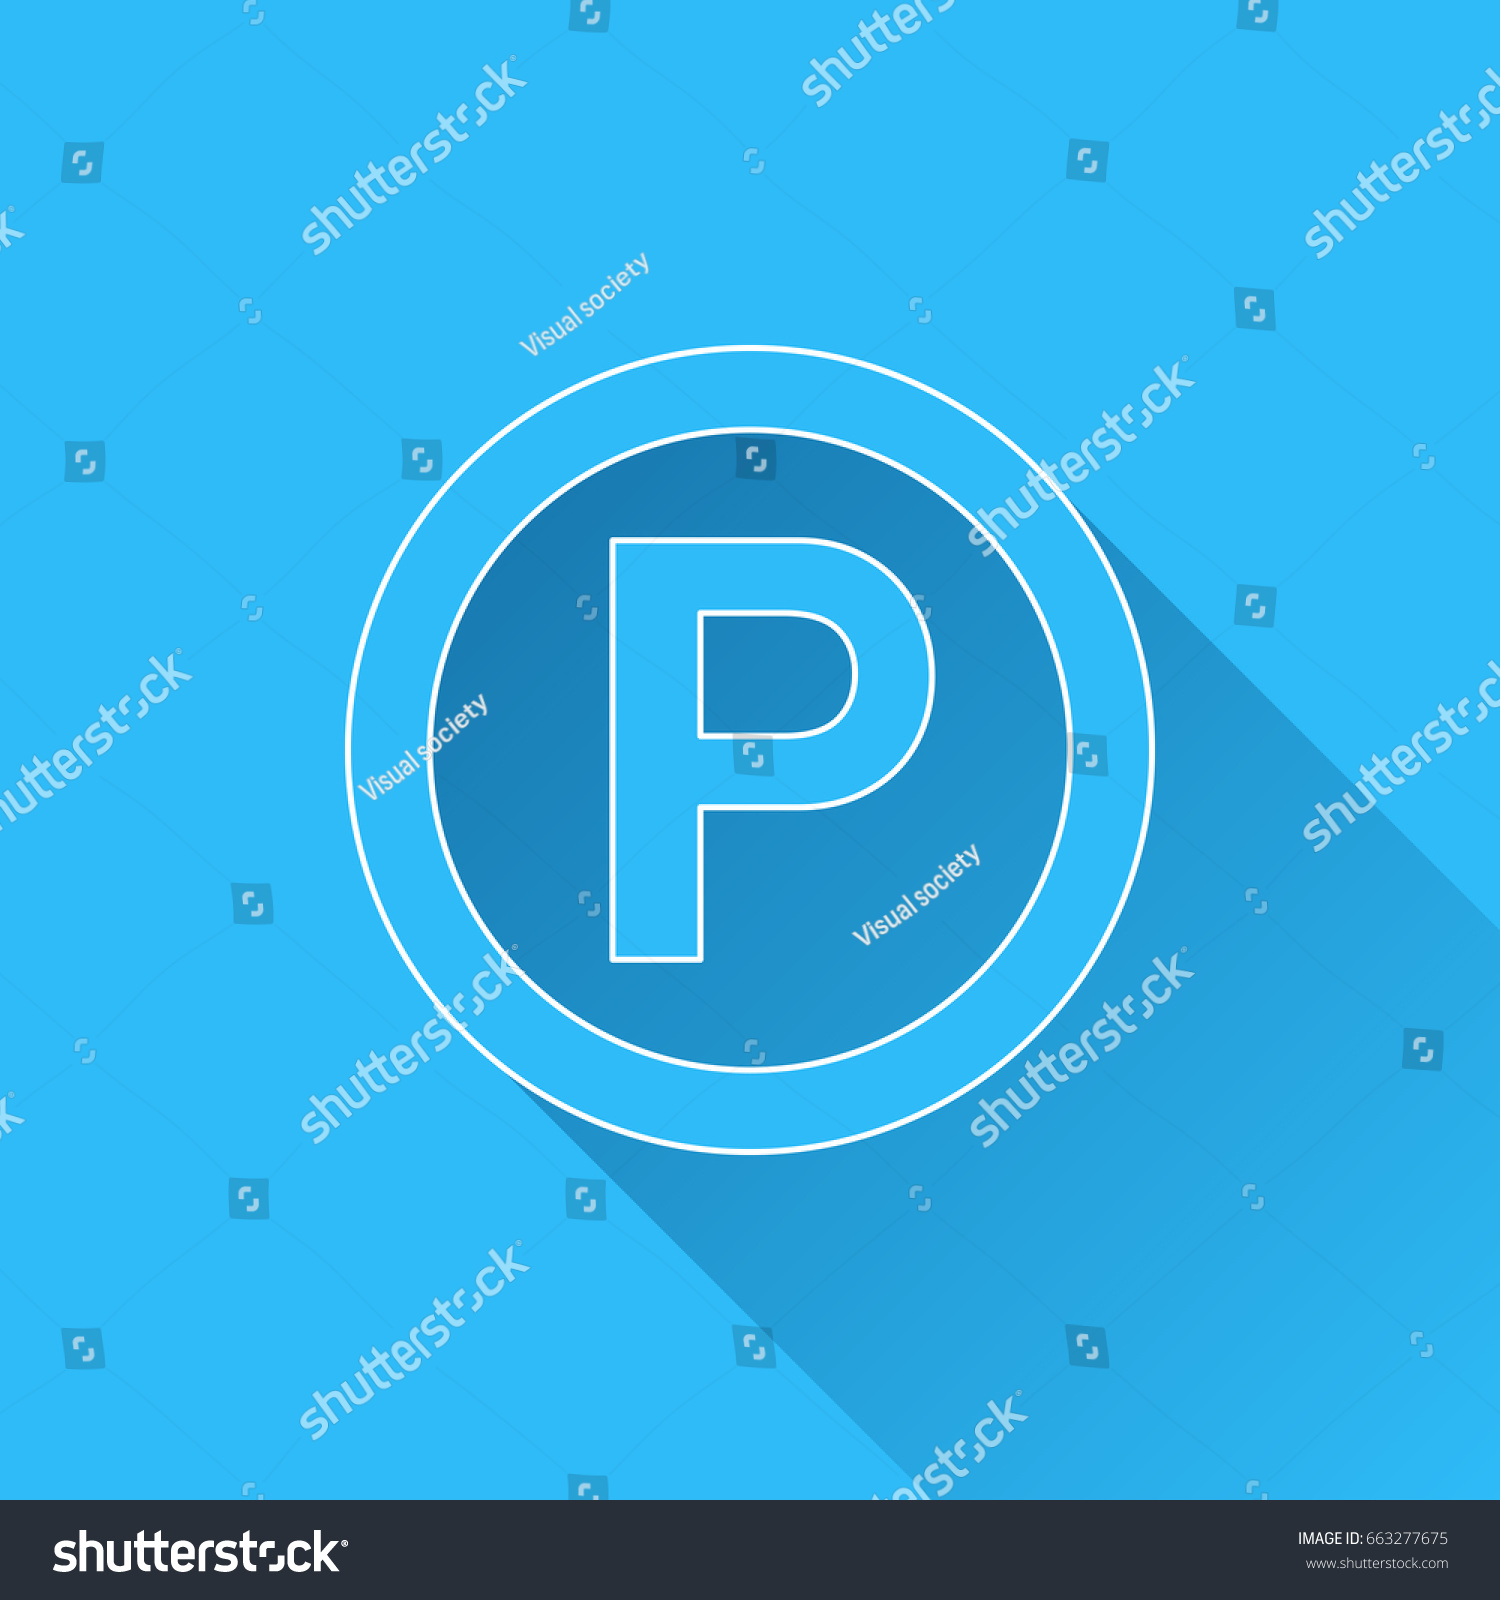 P sound recording copyright symbol long stock vector 663277675 p sound recording copyright symbol with long shadow and white outline on blue background biocorpaavc